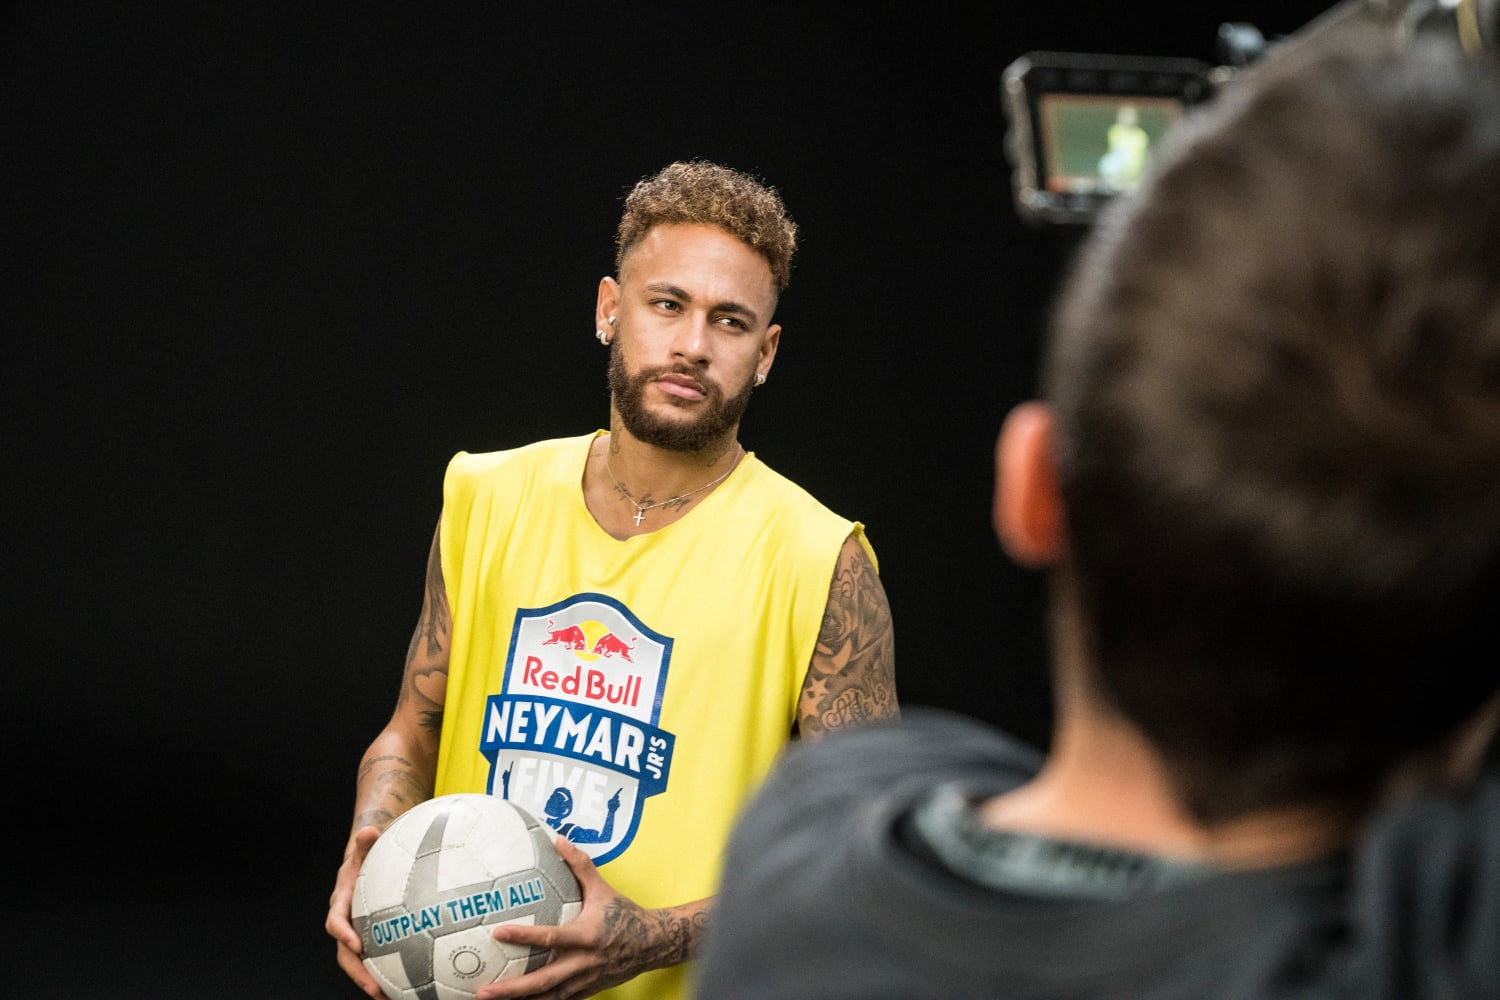 Neymar Jr And His Passion For Football